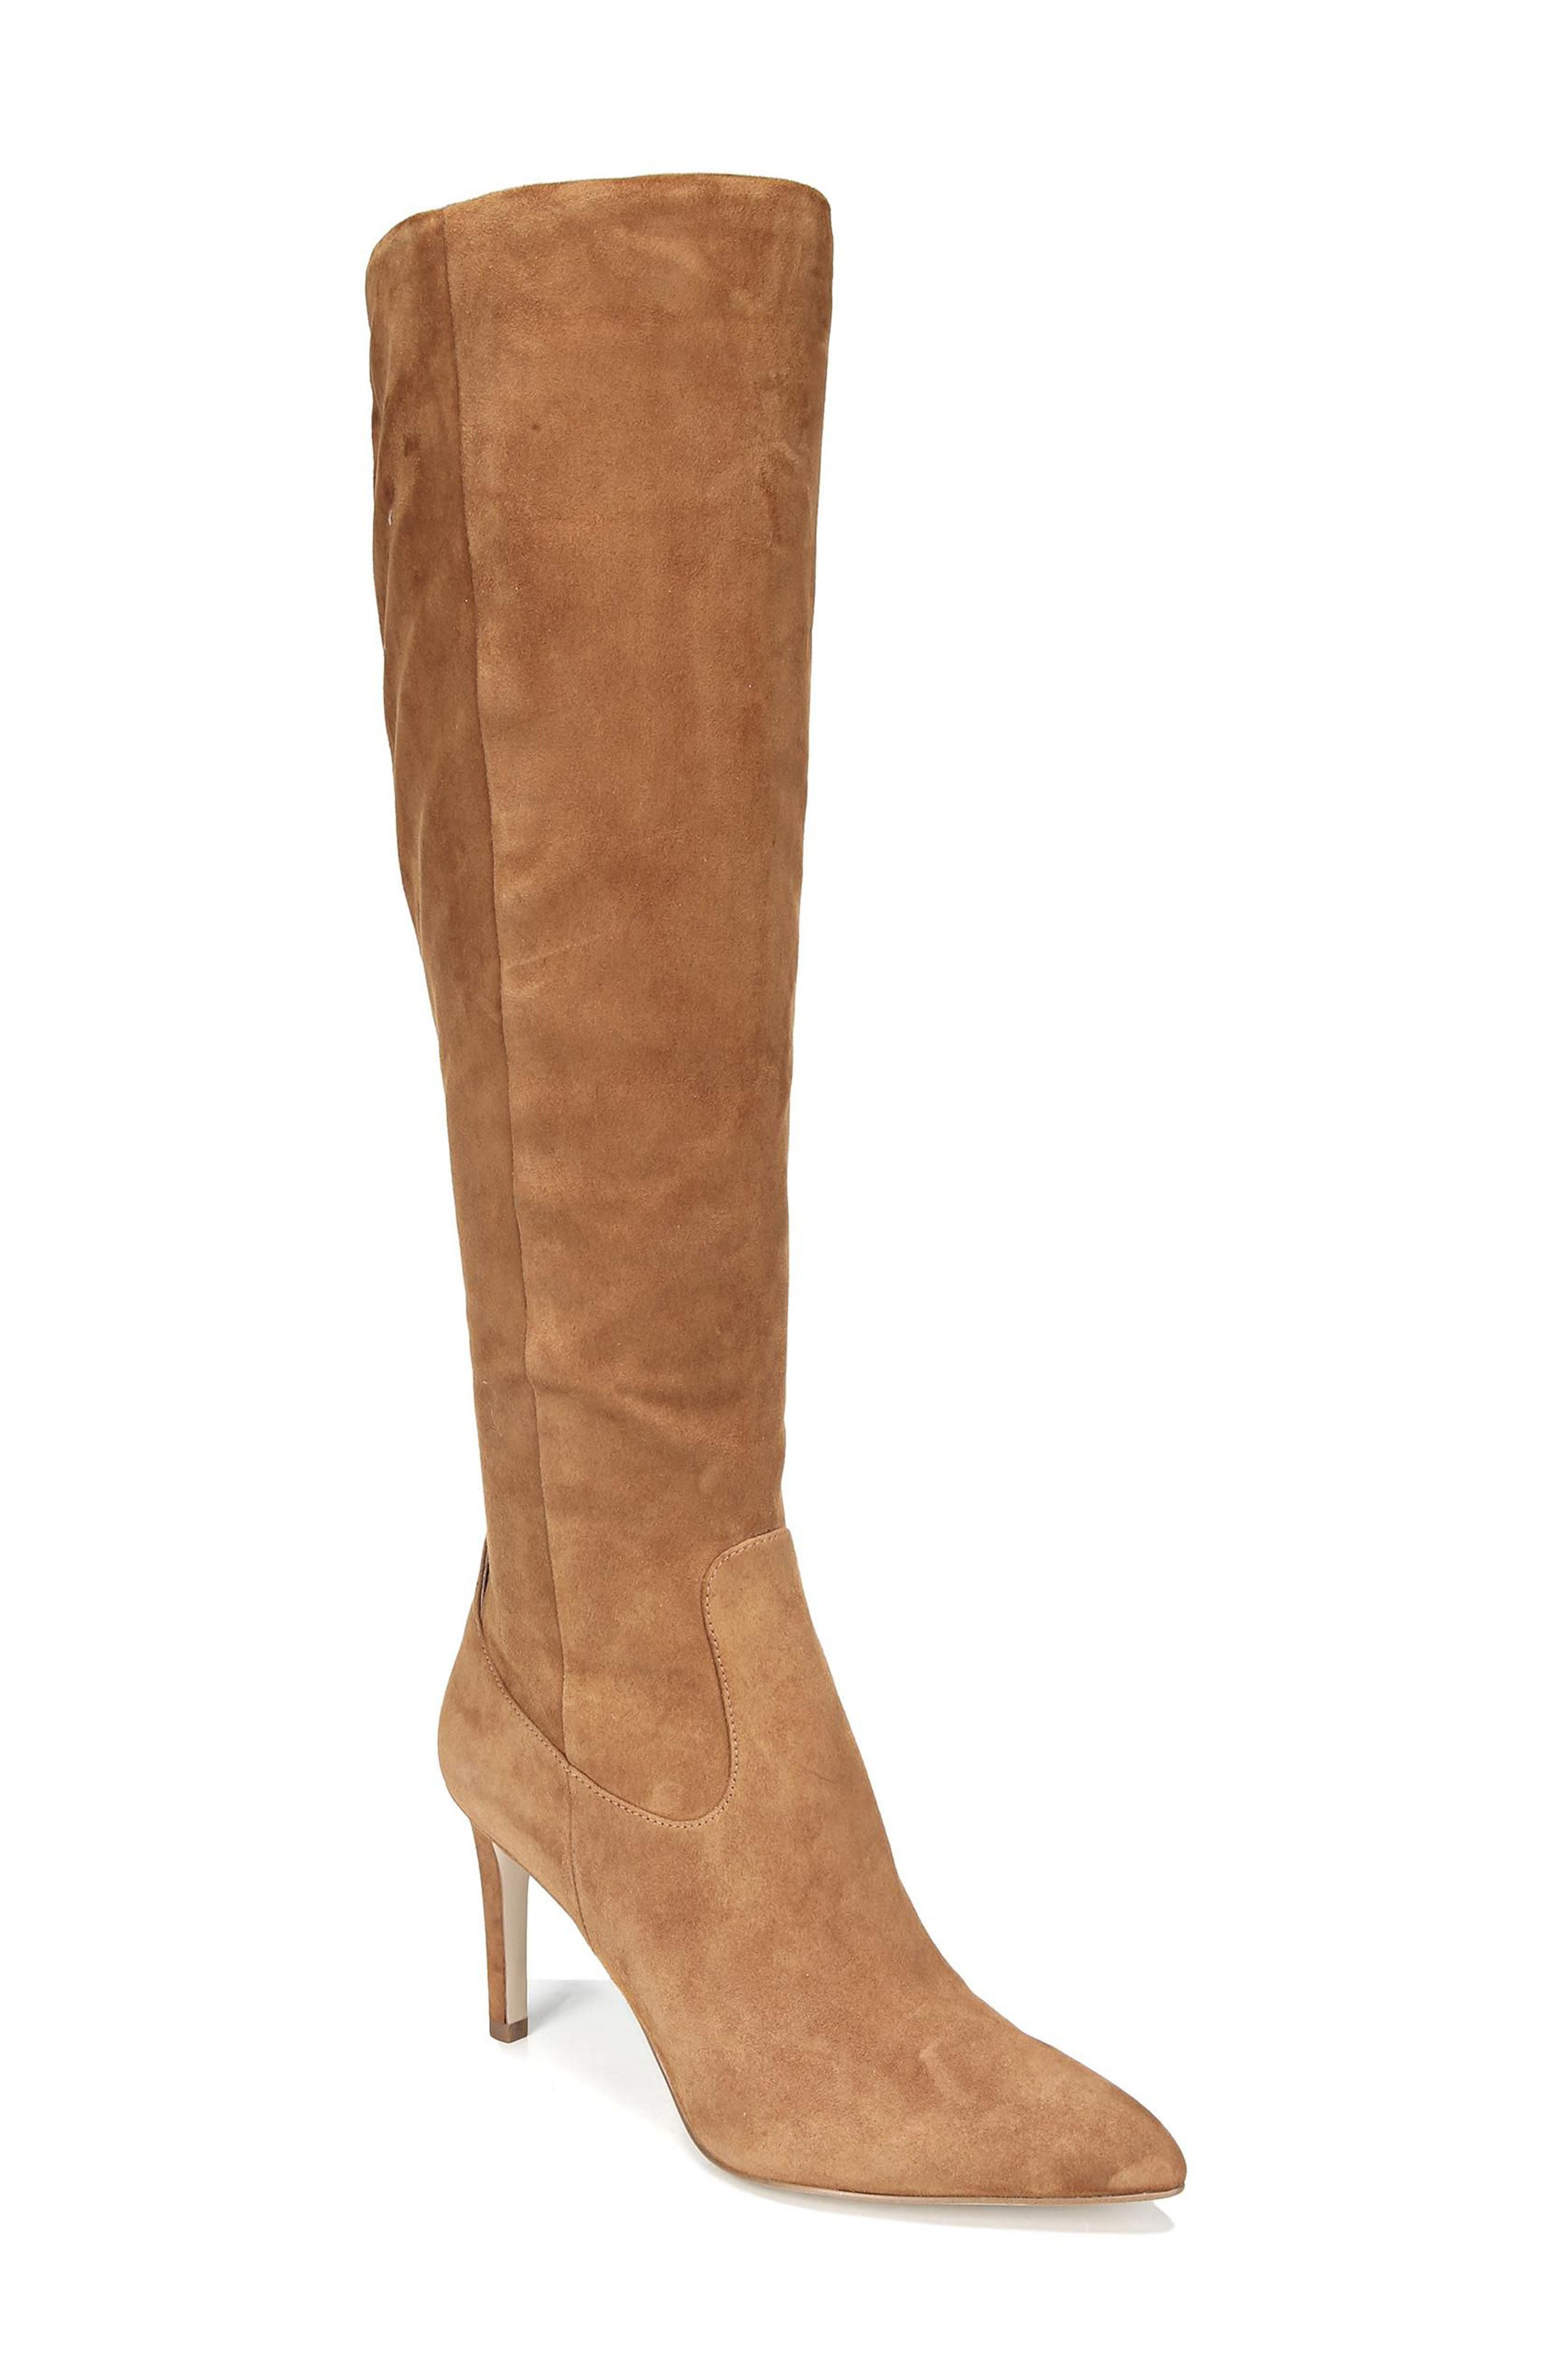 Olencia Knee High Boot,                             Main thumbnail 1, color,                             Luggage Suede